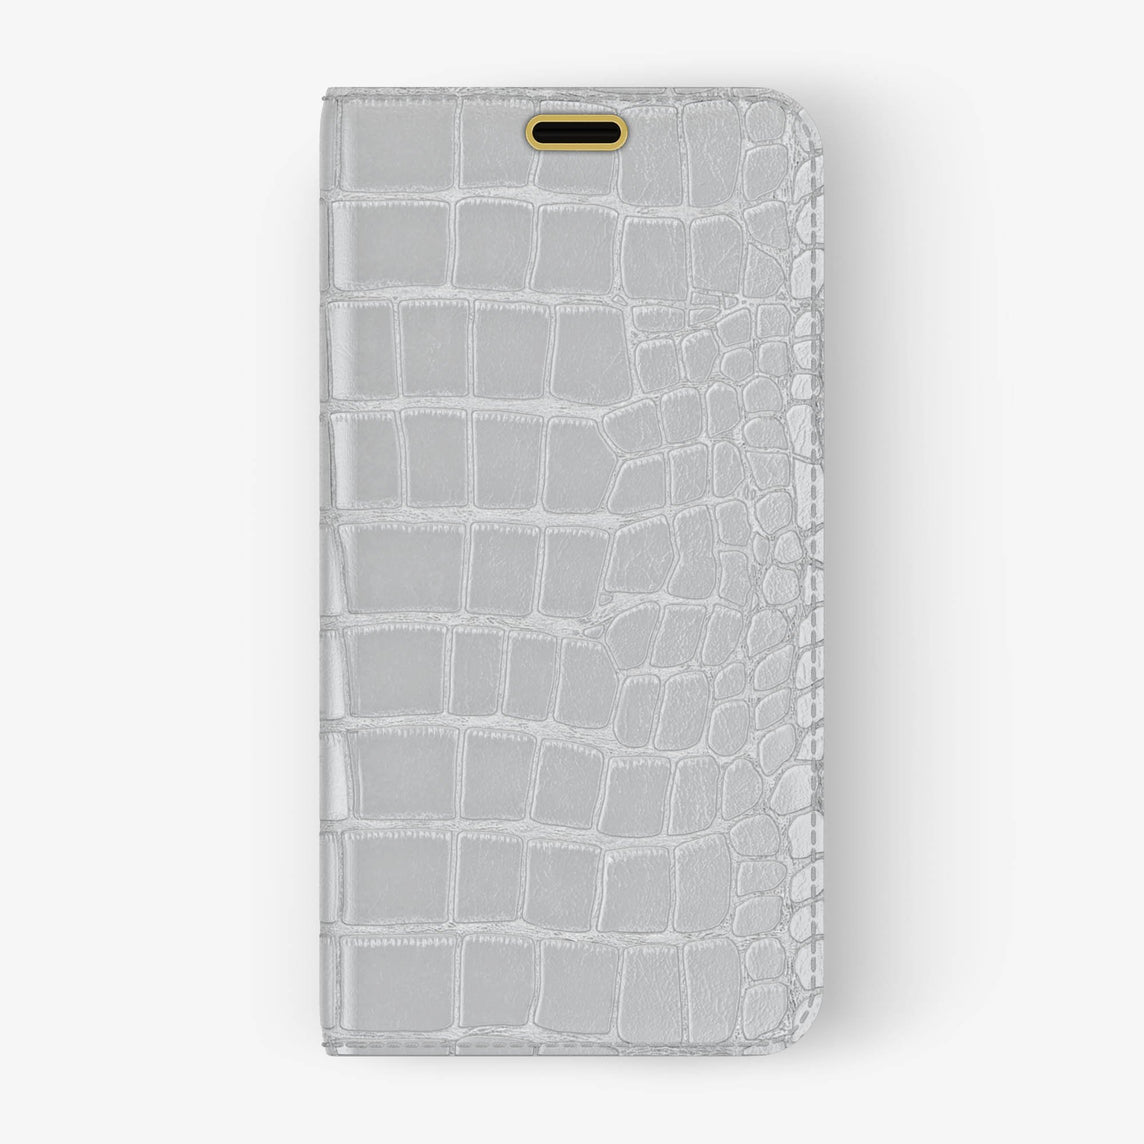 Alligator Folio Case iPhone X/Xs | White - Yellow Gold without-personalization